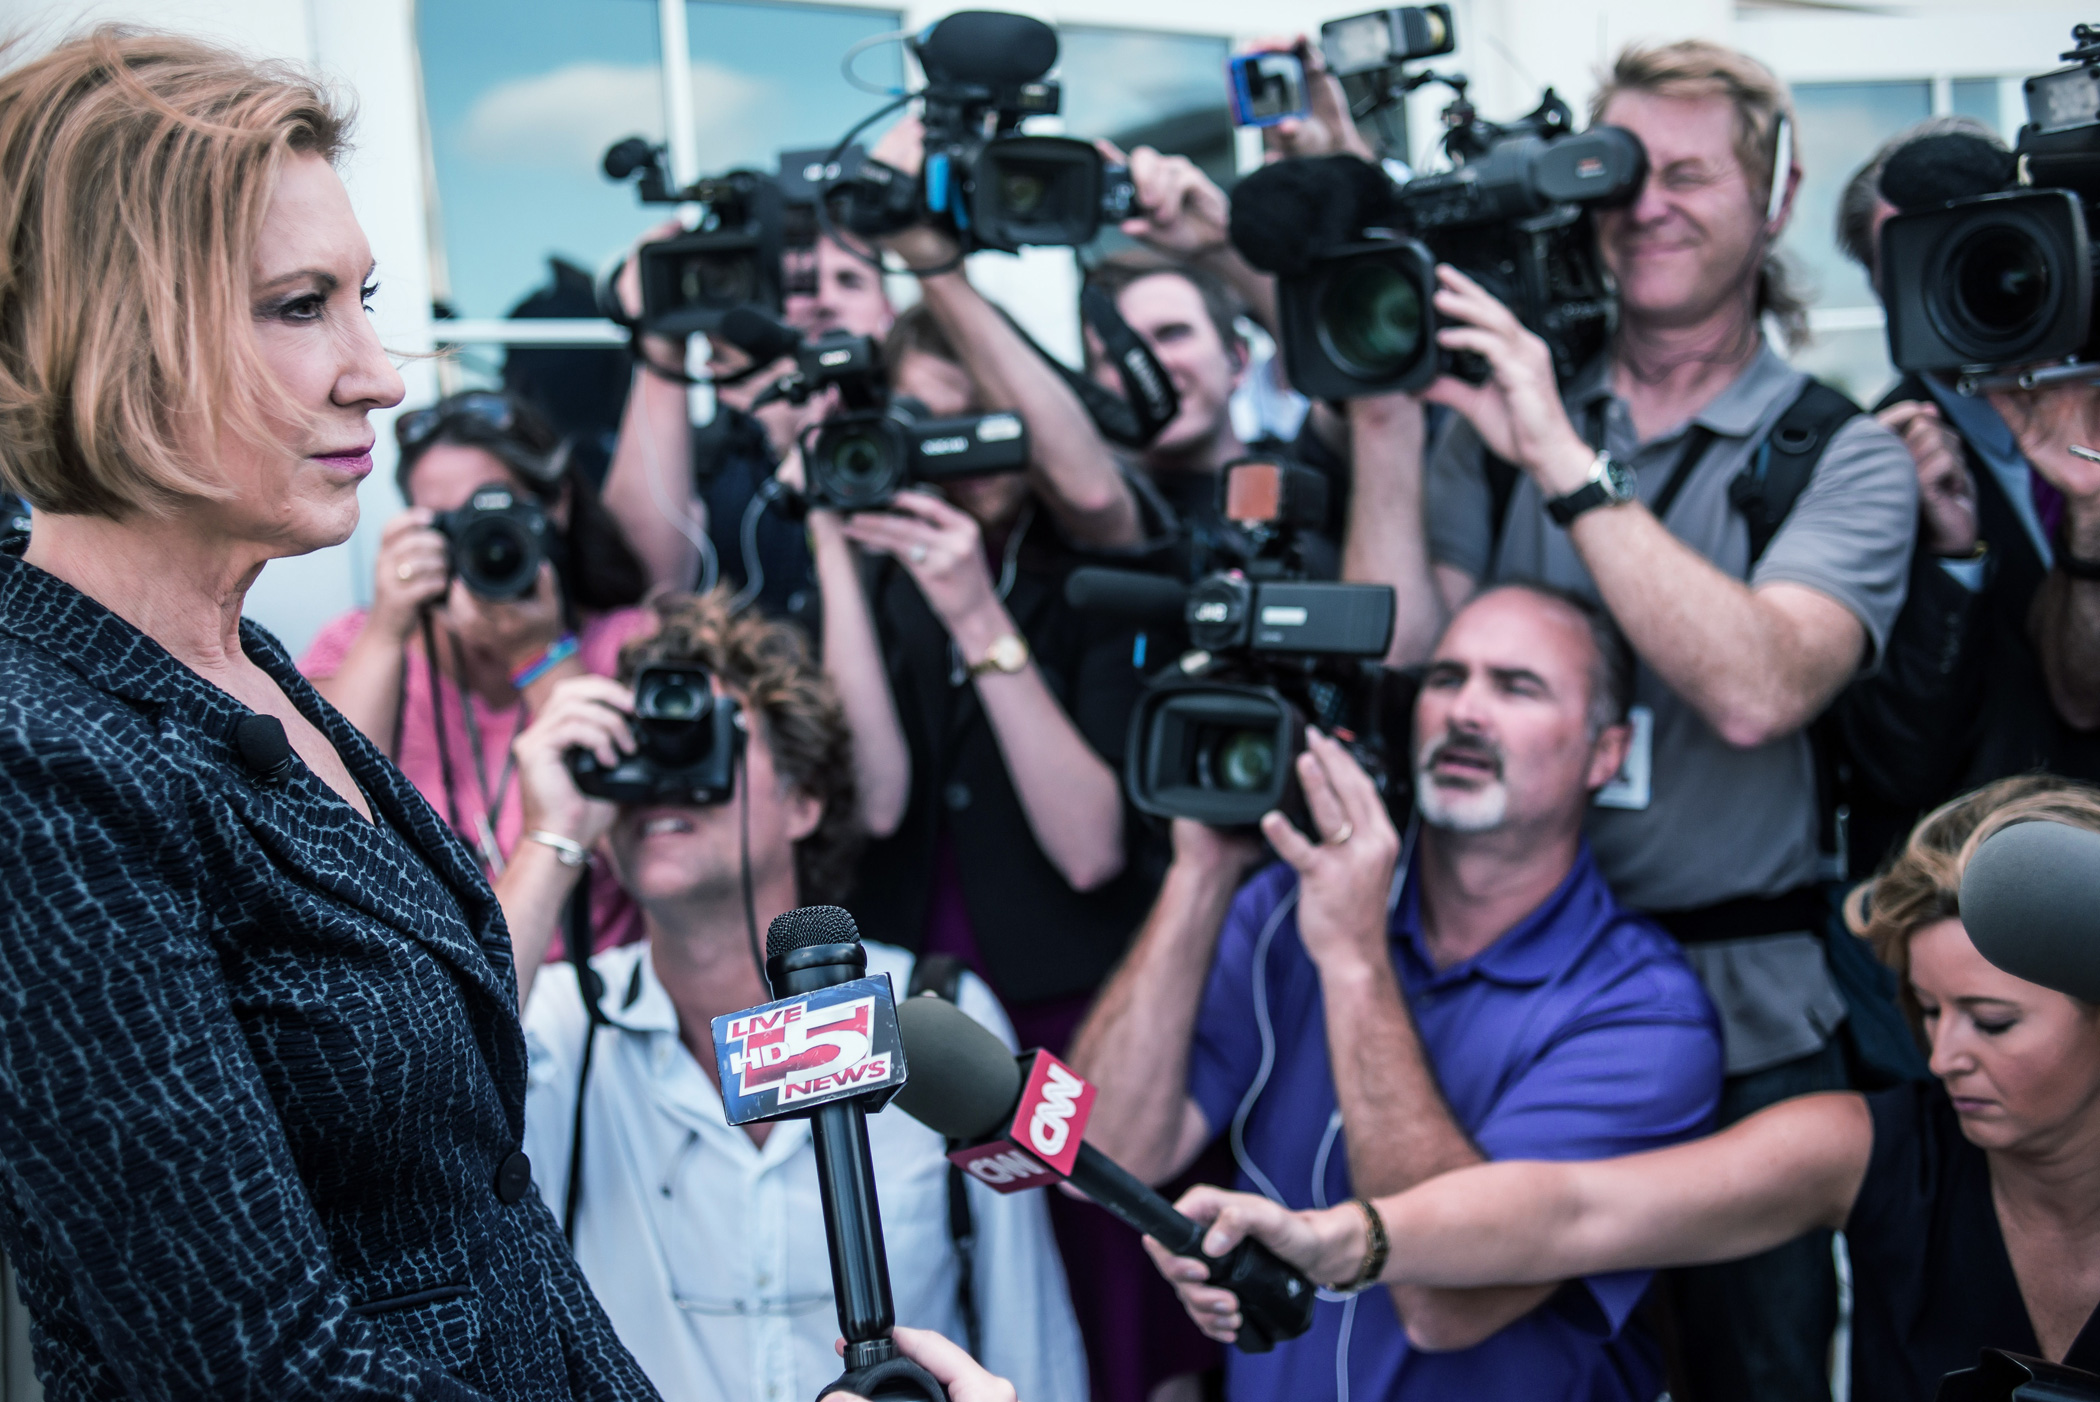 Carly Fiorina speaks to the media after a national security forum on Sept. 22, 2015 in Charleston, S.C.